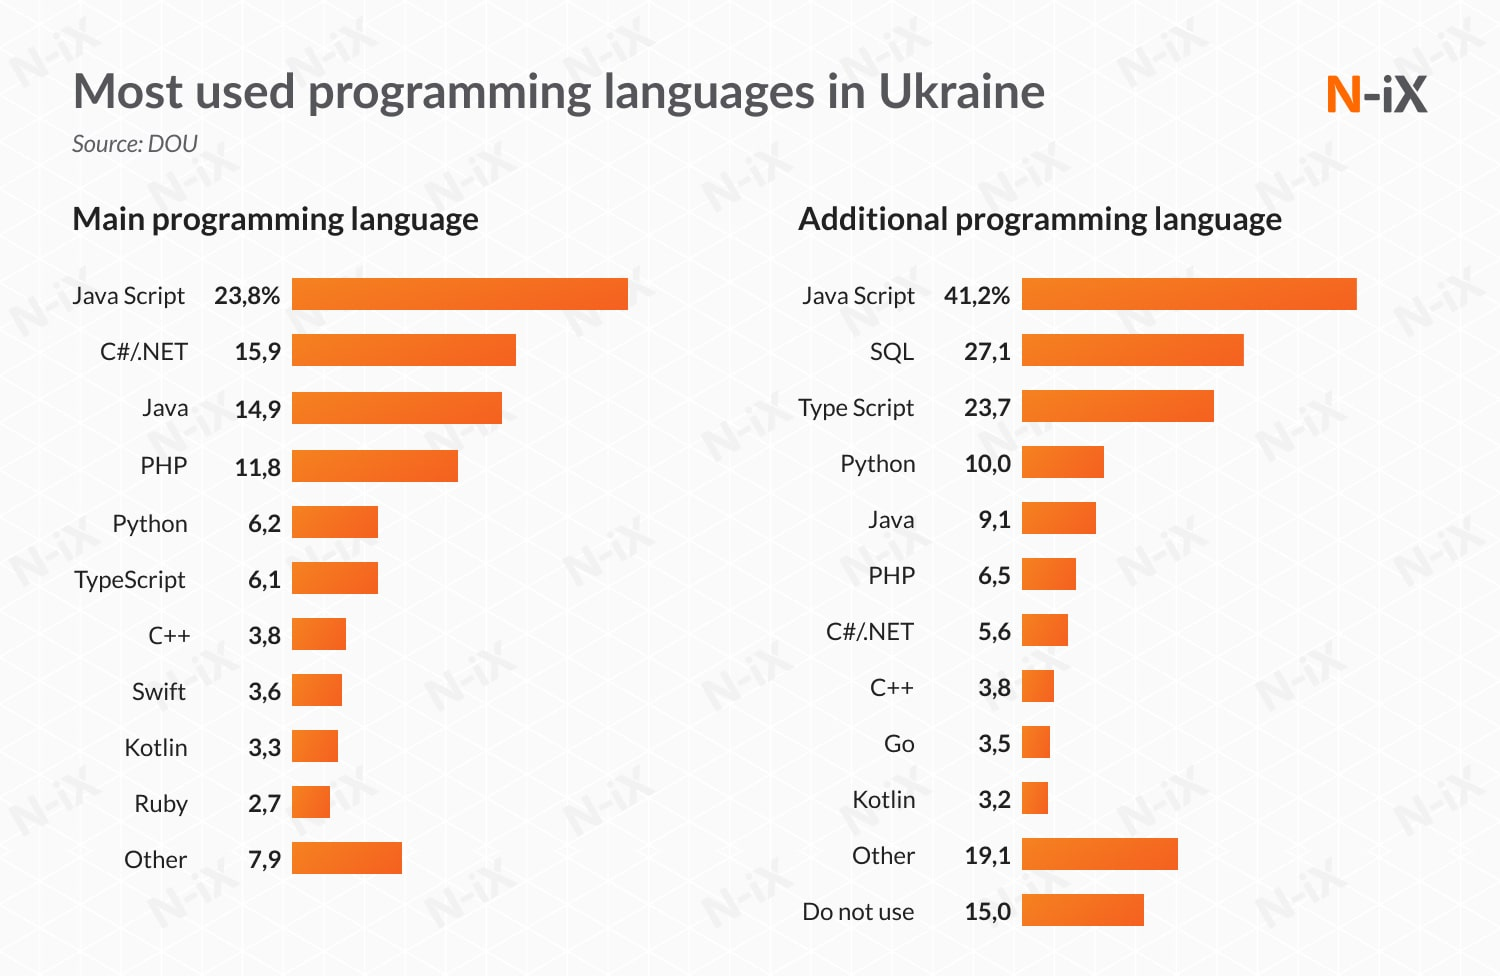 software development to Slovakia and Ukraine: most used programming languages in Ukraine